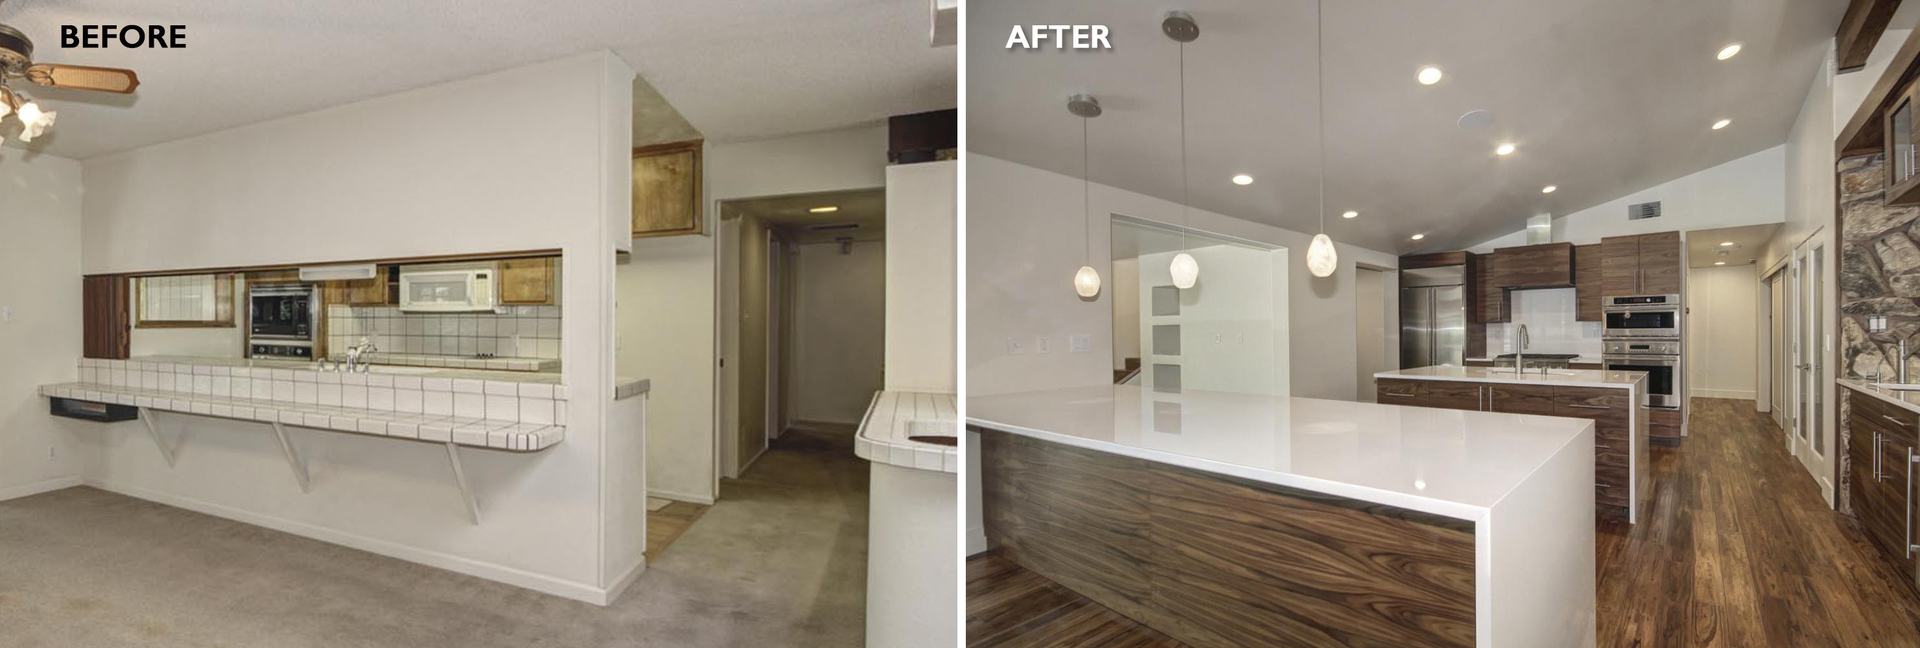 Susan Way Kitchen Before and After 2